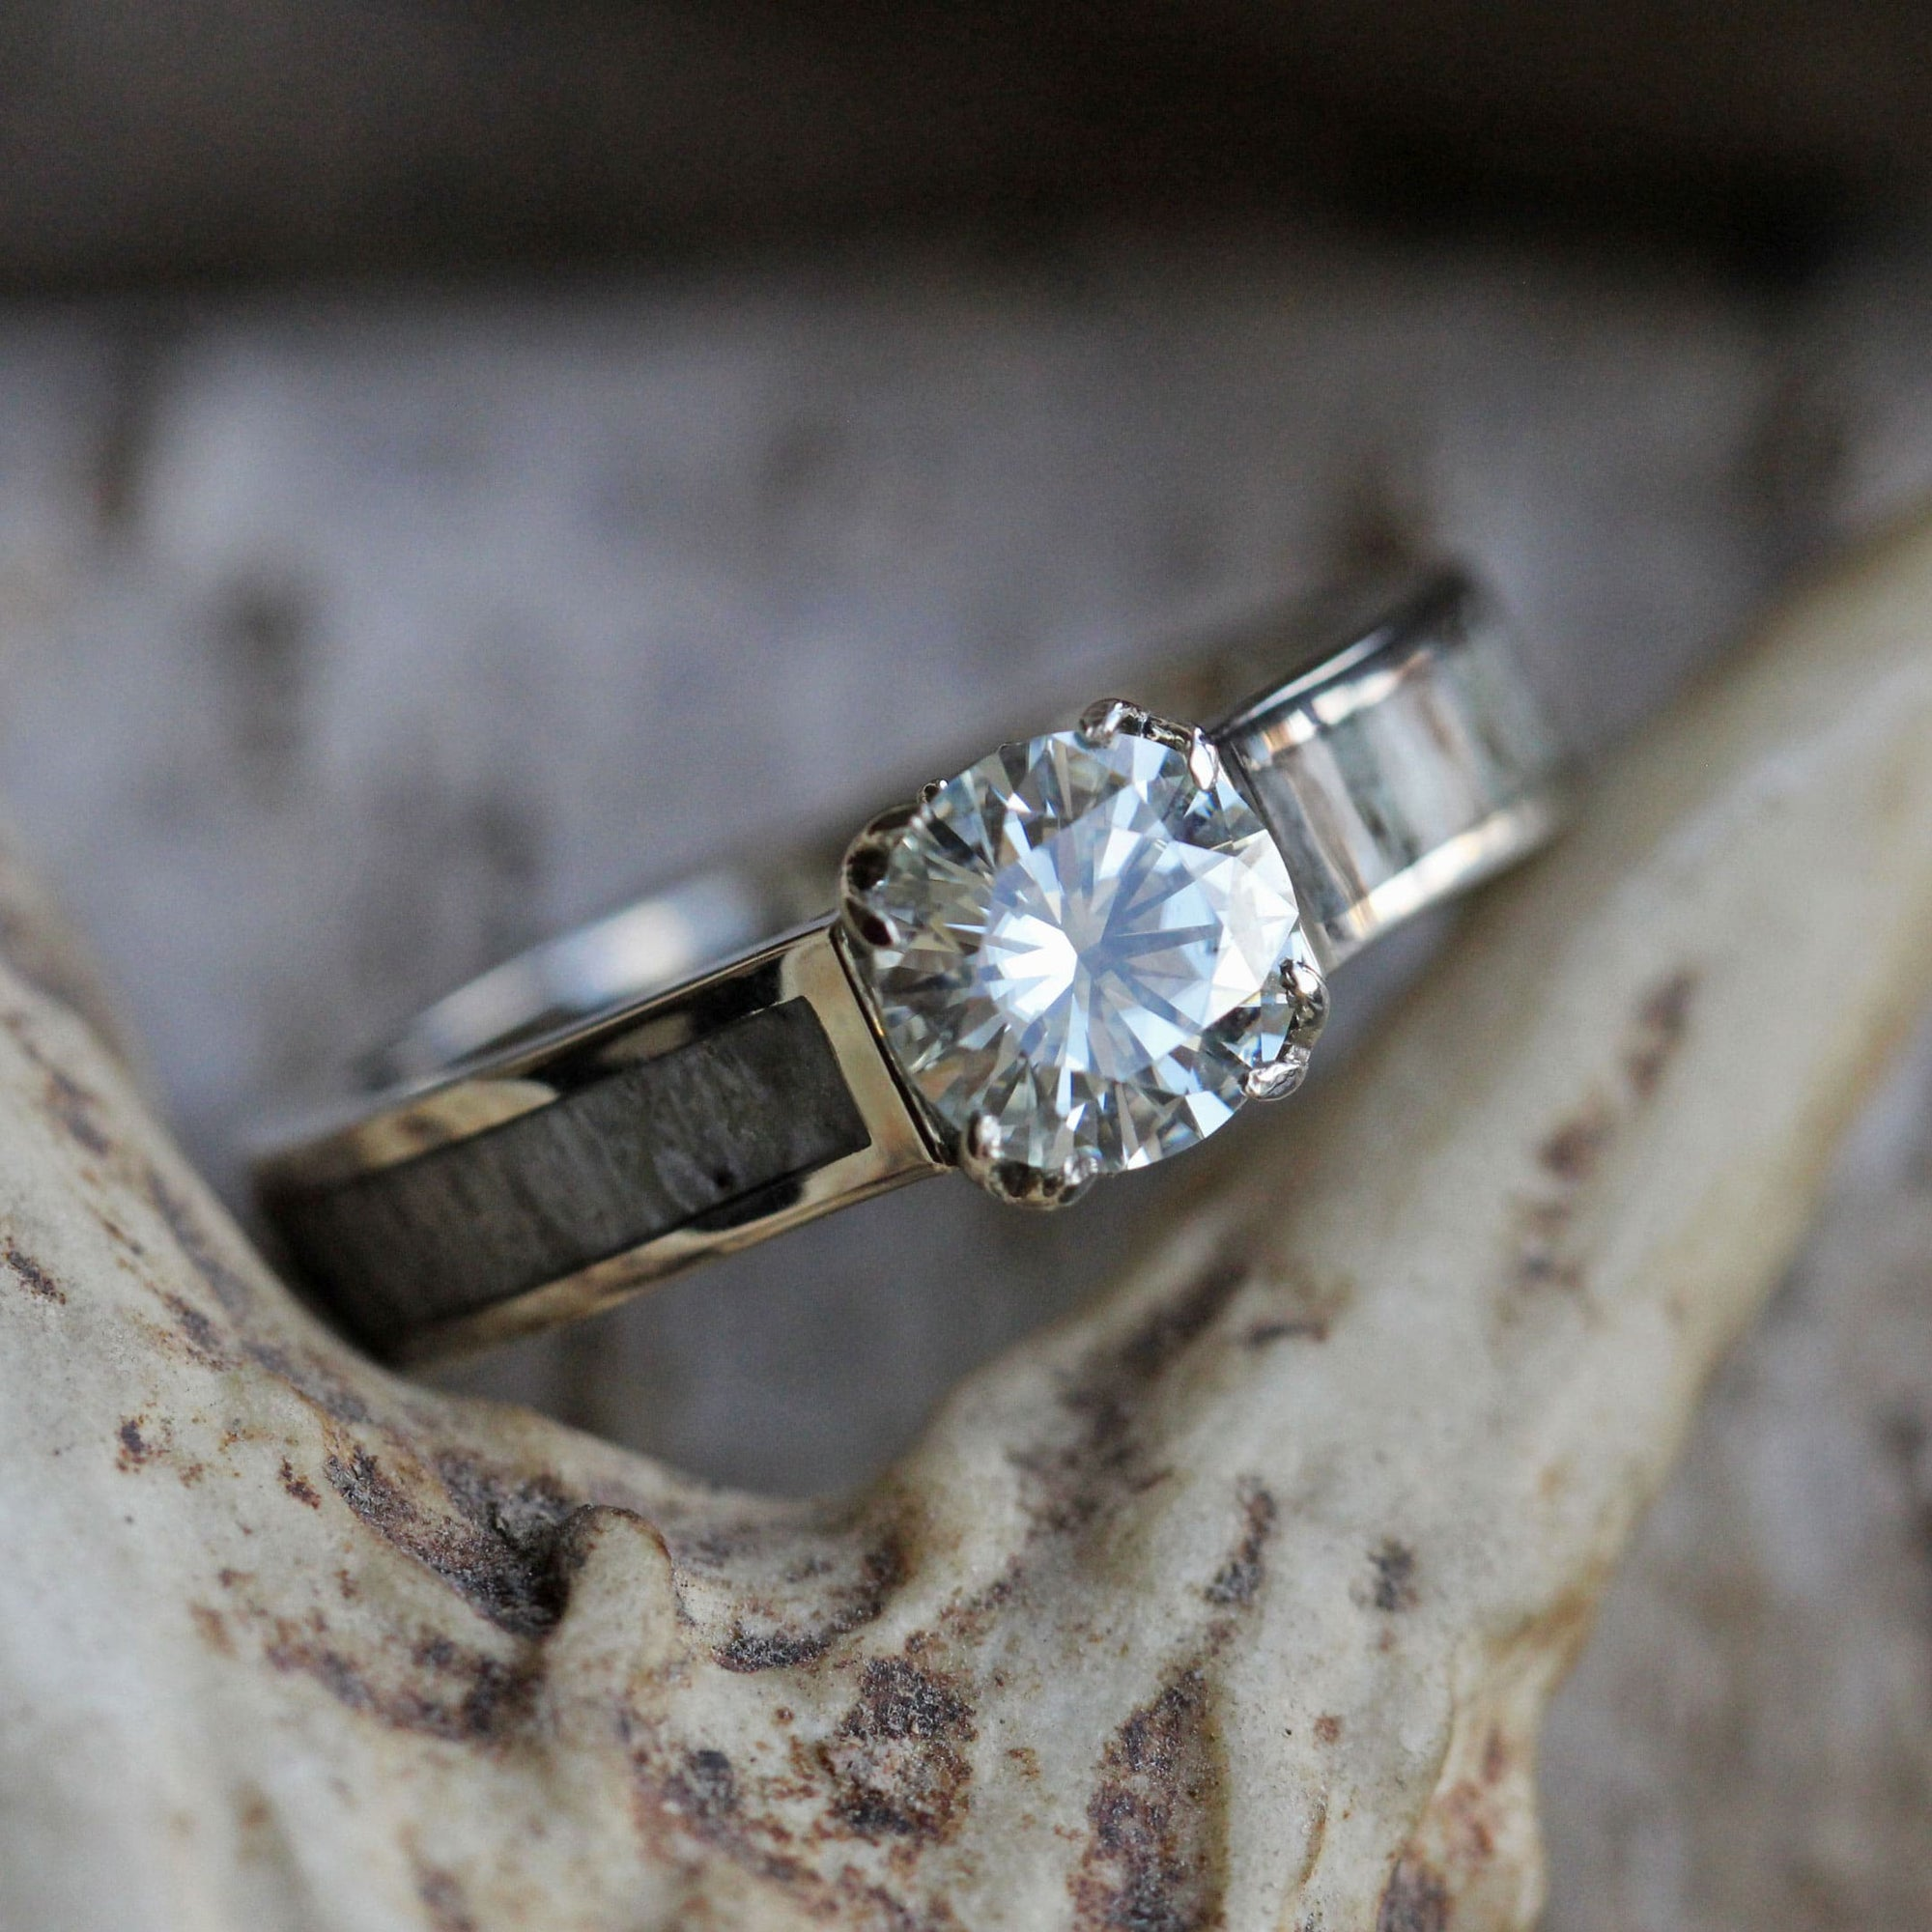 and abalone manmade m diamond look askwomen shell picked that a with your love ladies rings r non nondiamond halo wood one out what engagement does i tungsten ring is his it tanzanite the comments